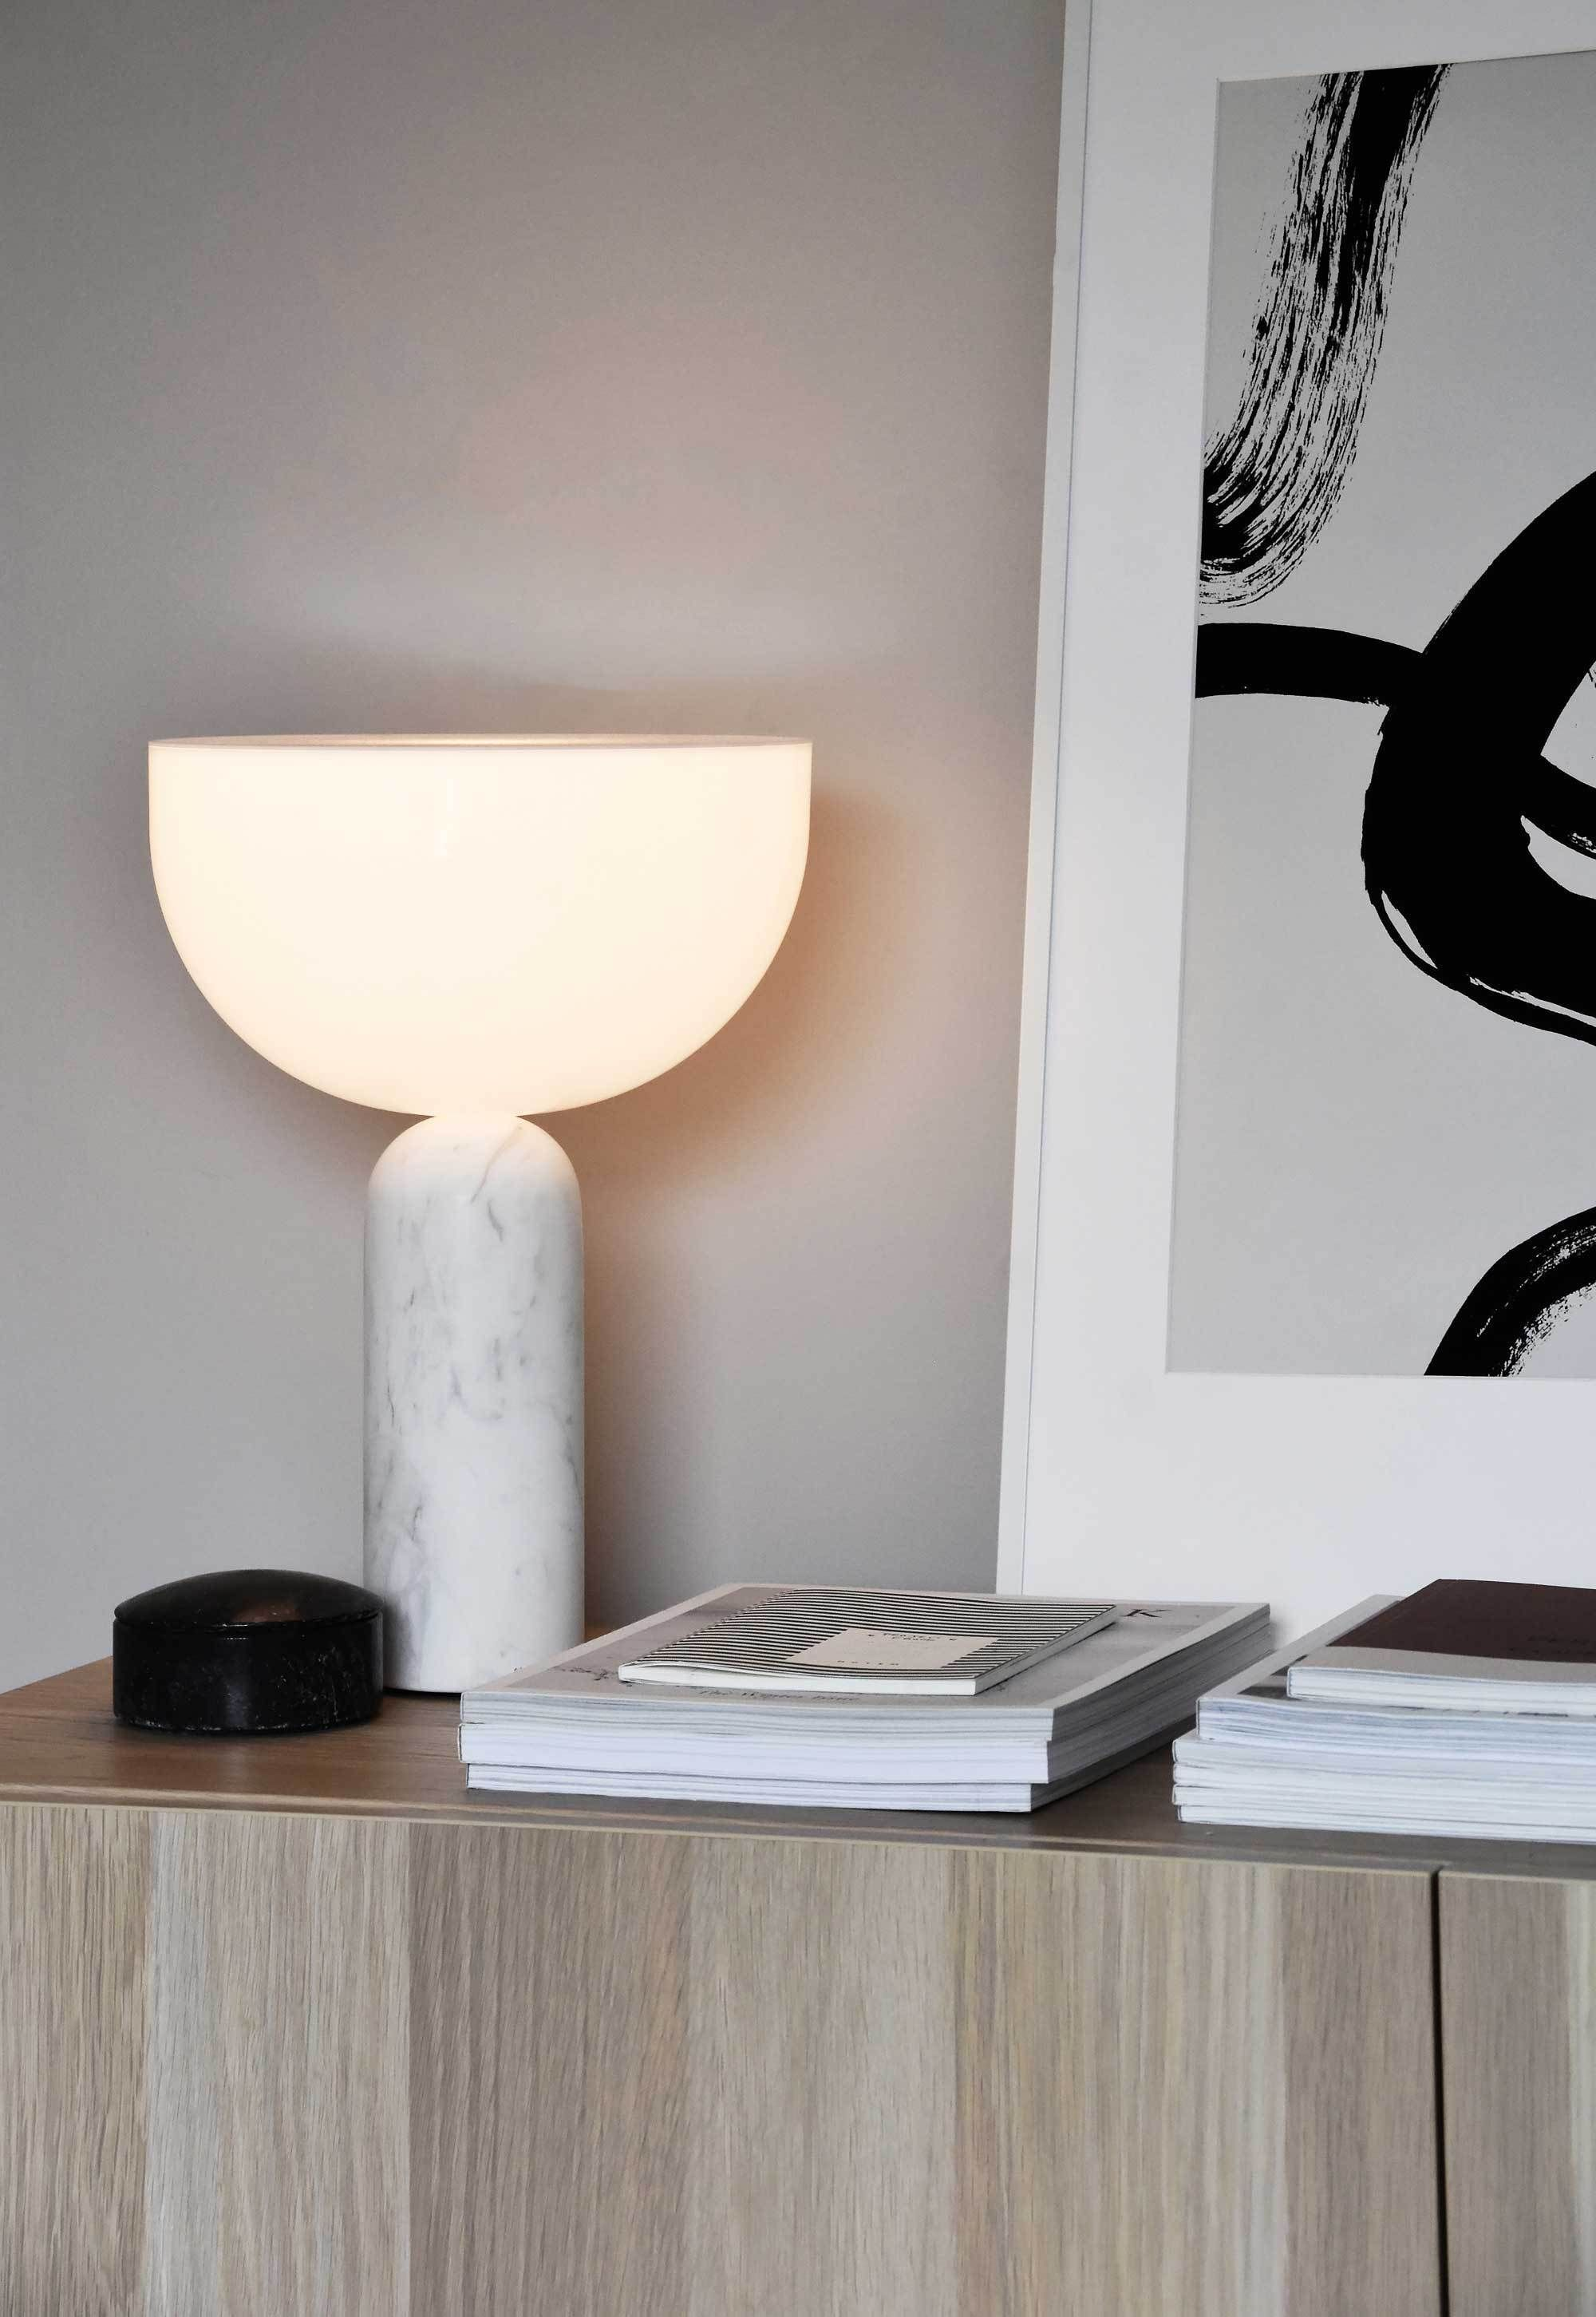 The New Works Kizu Table Lamp Styled Two Ways These Four Walls Table Lamps For Bedroom Lamps Living Room Table Lamp #small #living #room #table #lamps